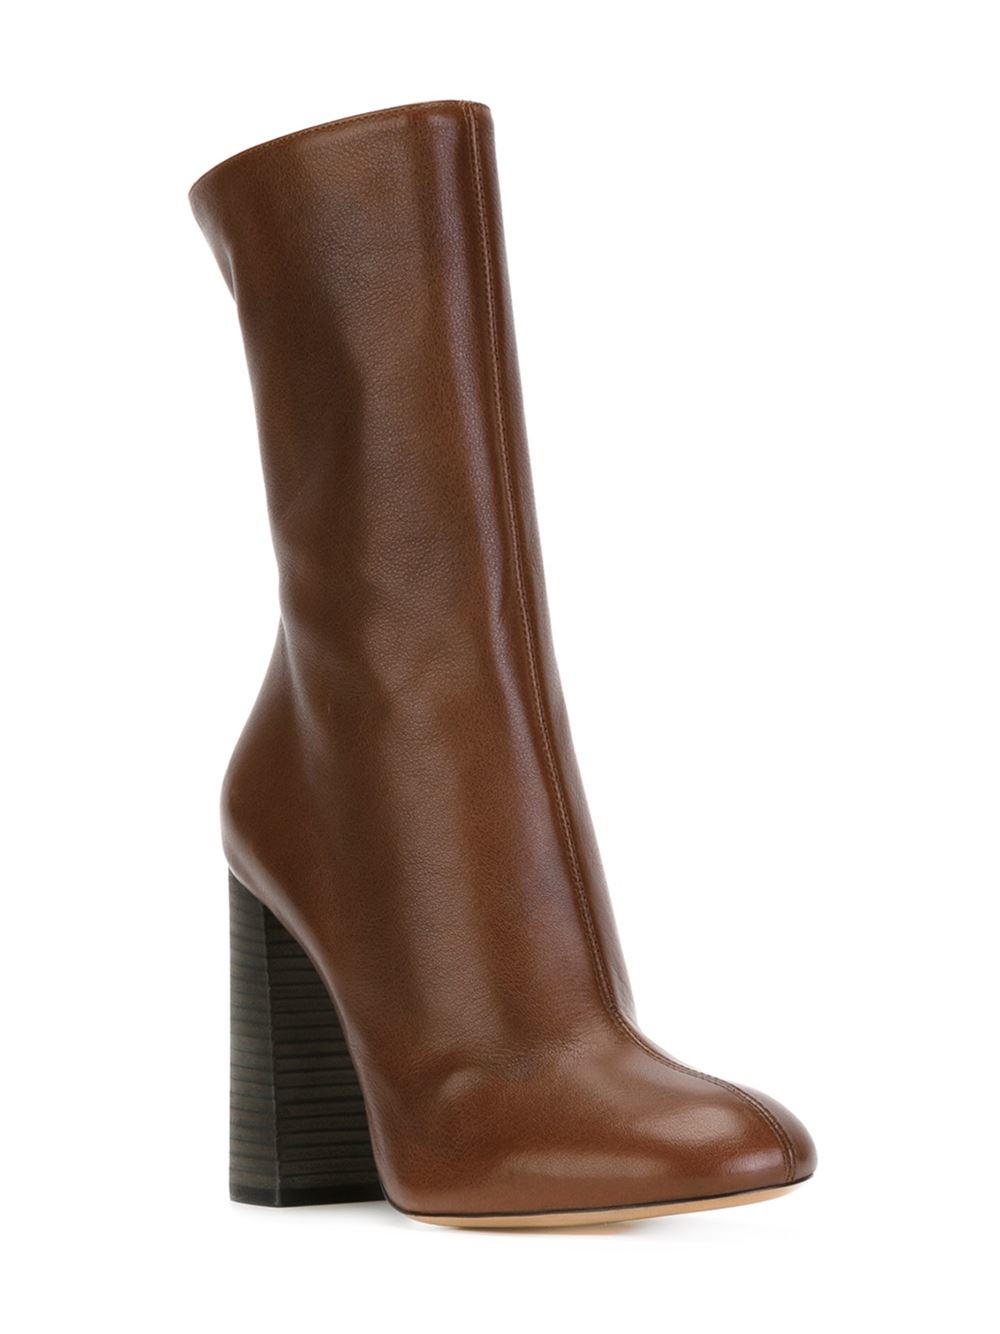 Chloé Leather 'harper' Boots in Brown